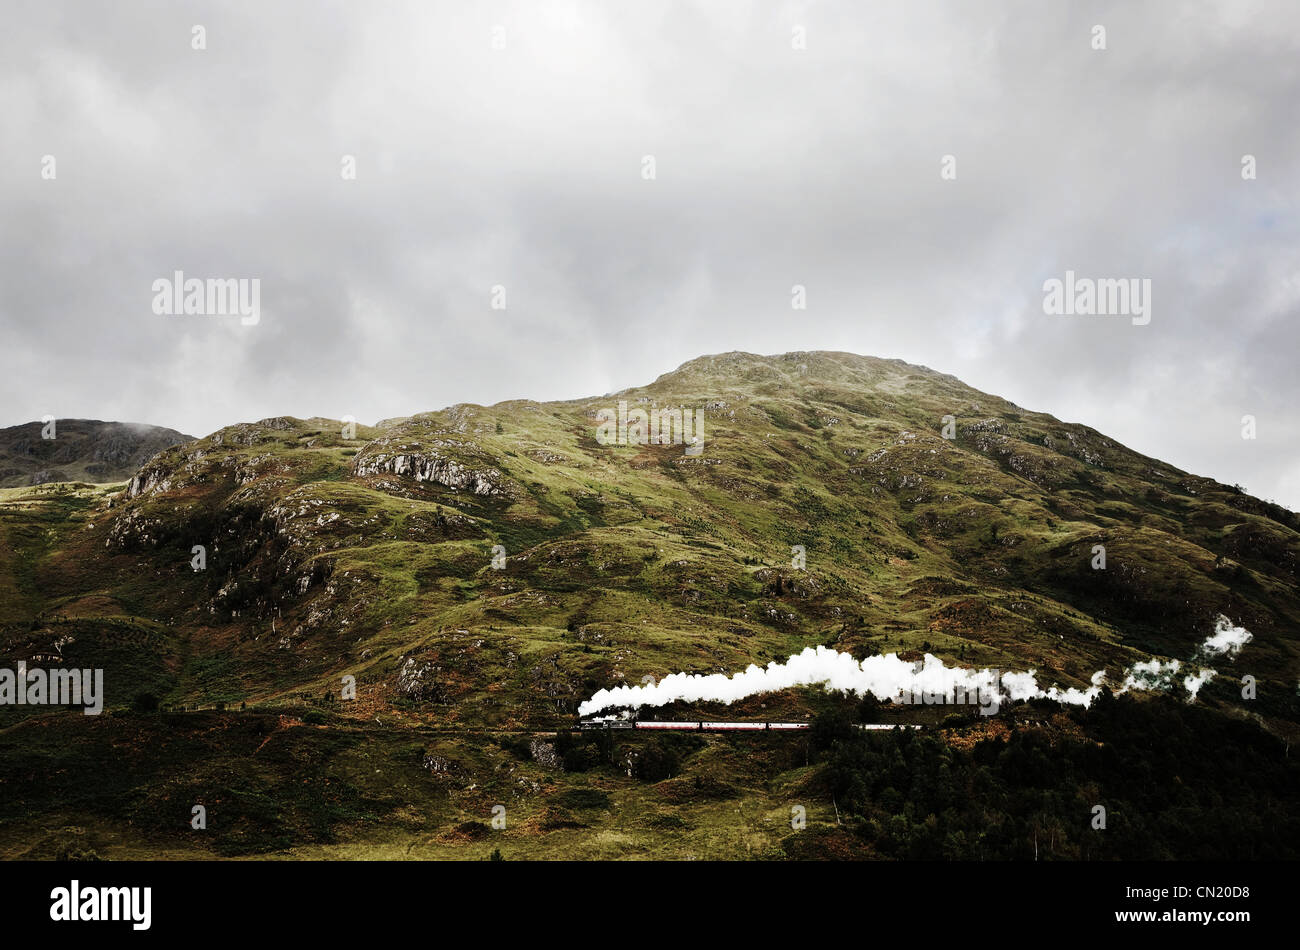 Steam train on mountain, Glenfinnan, Scotland - Stock Image